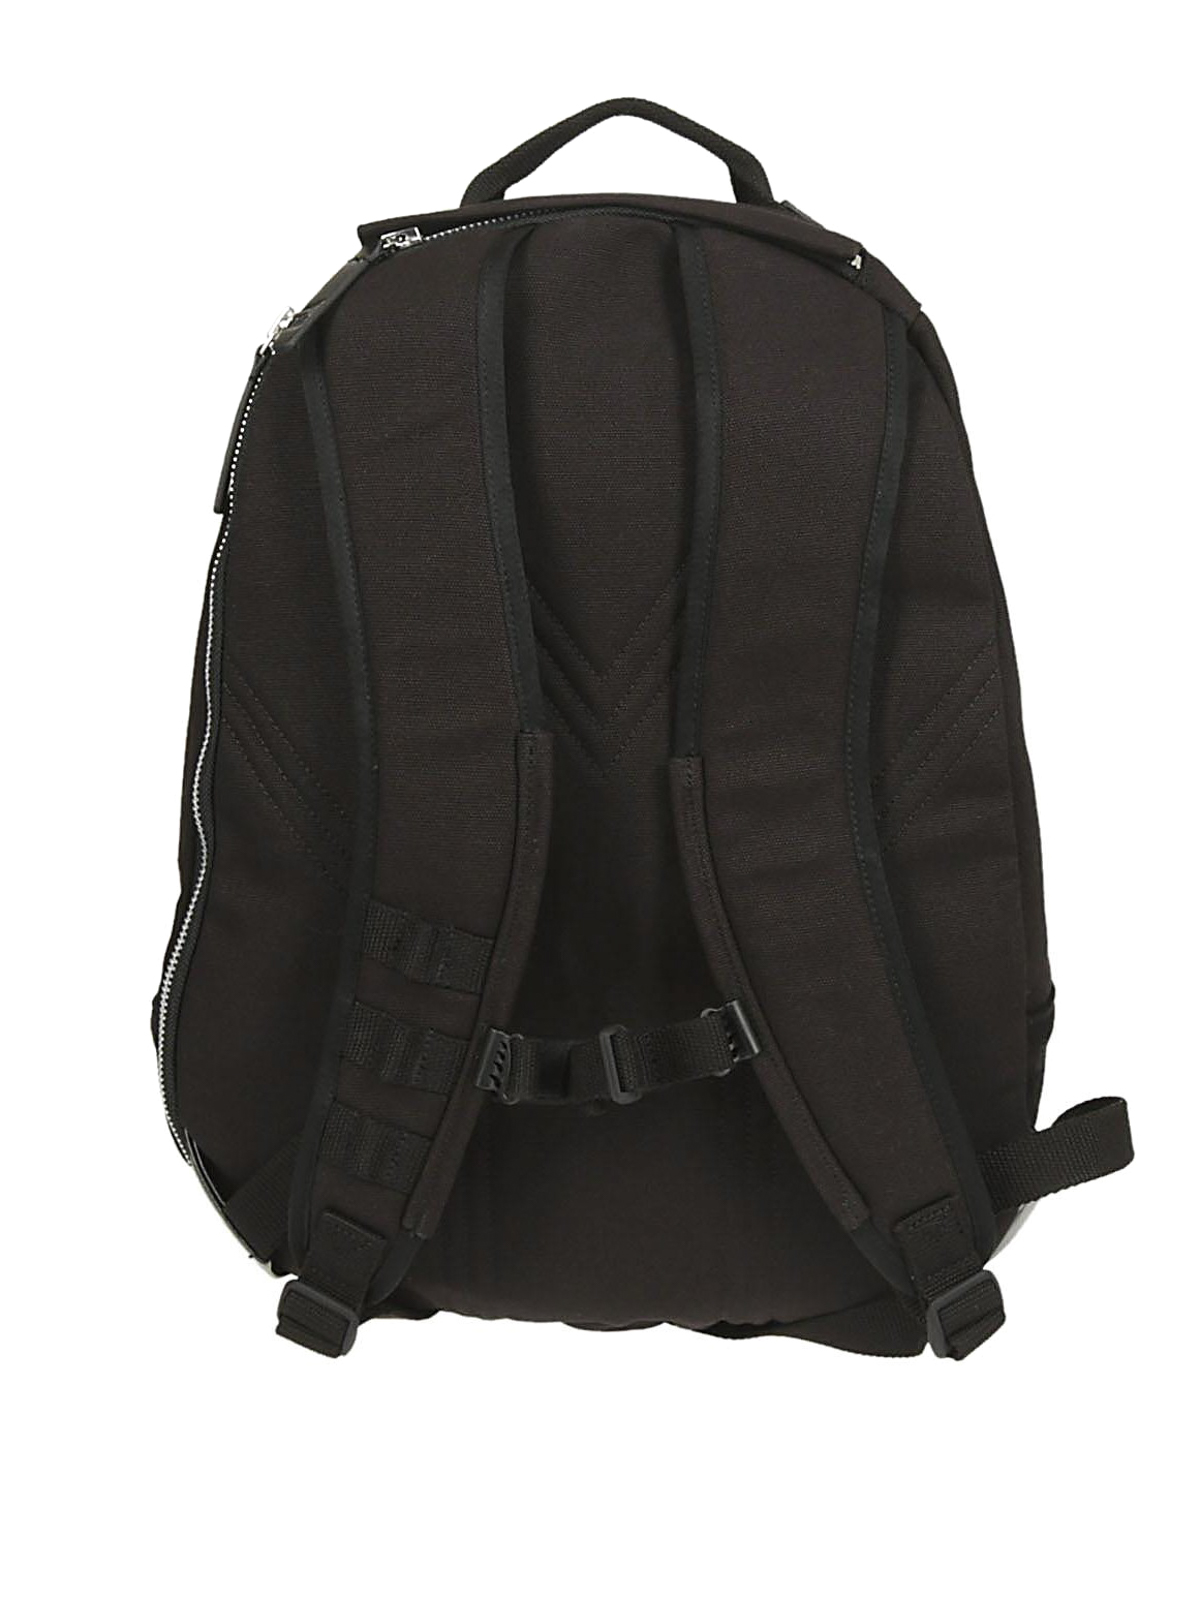 68734c94013c Adidas Y-3 - Black cotton and suede backpack - backpacks - CY3487